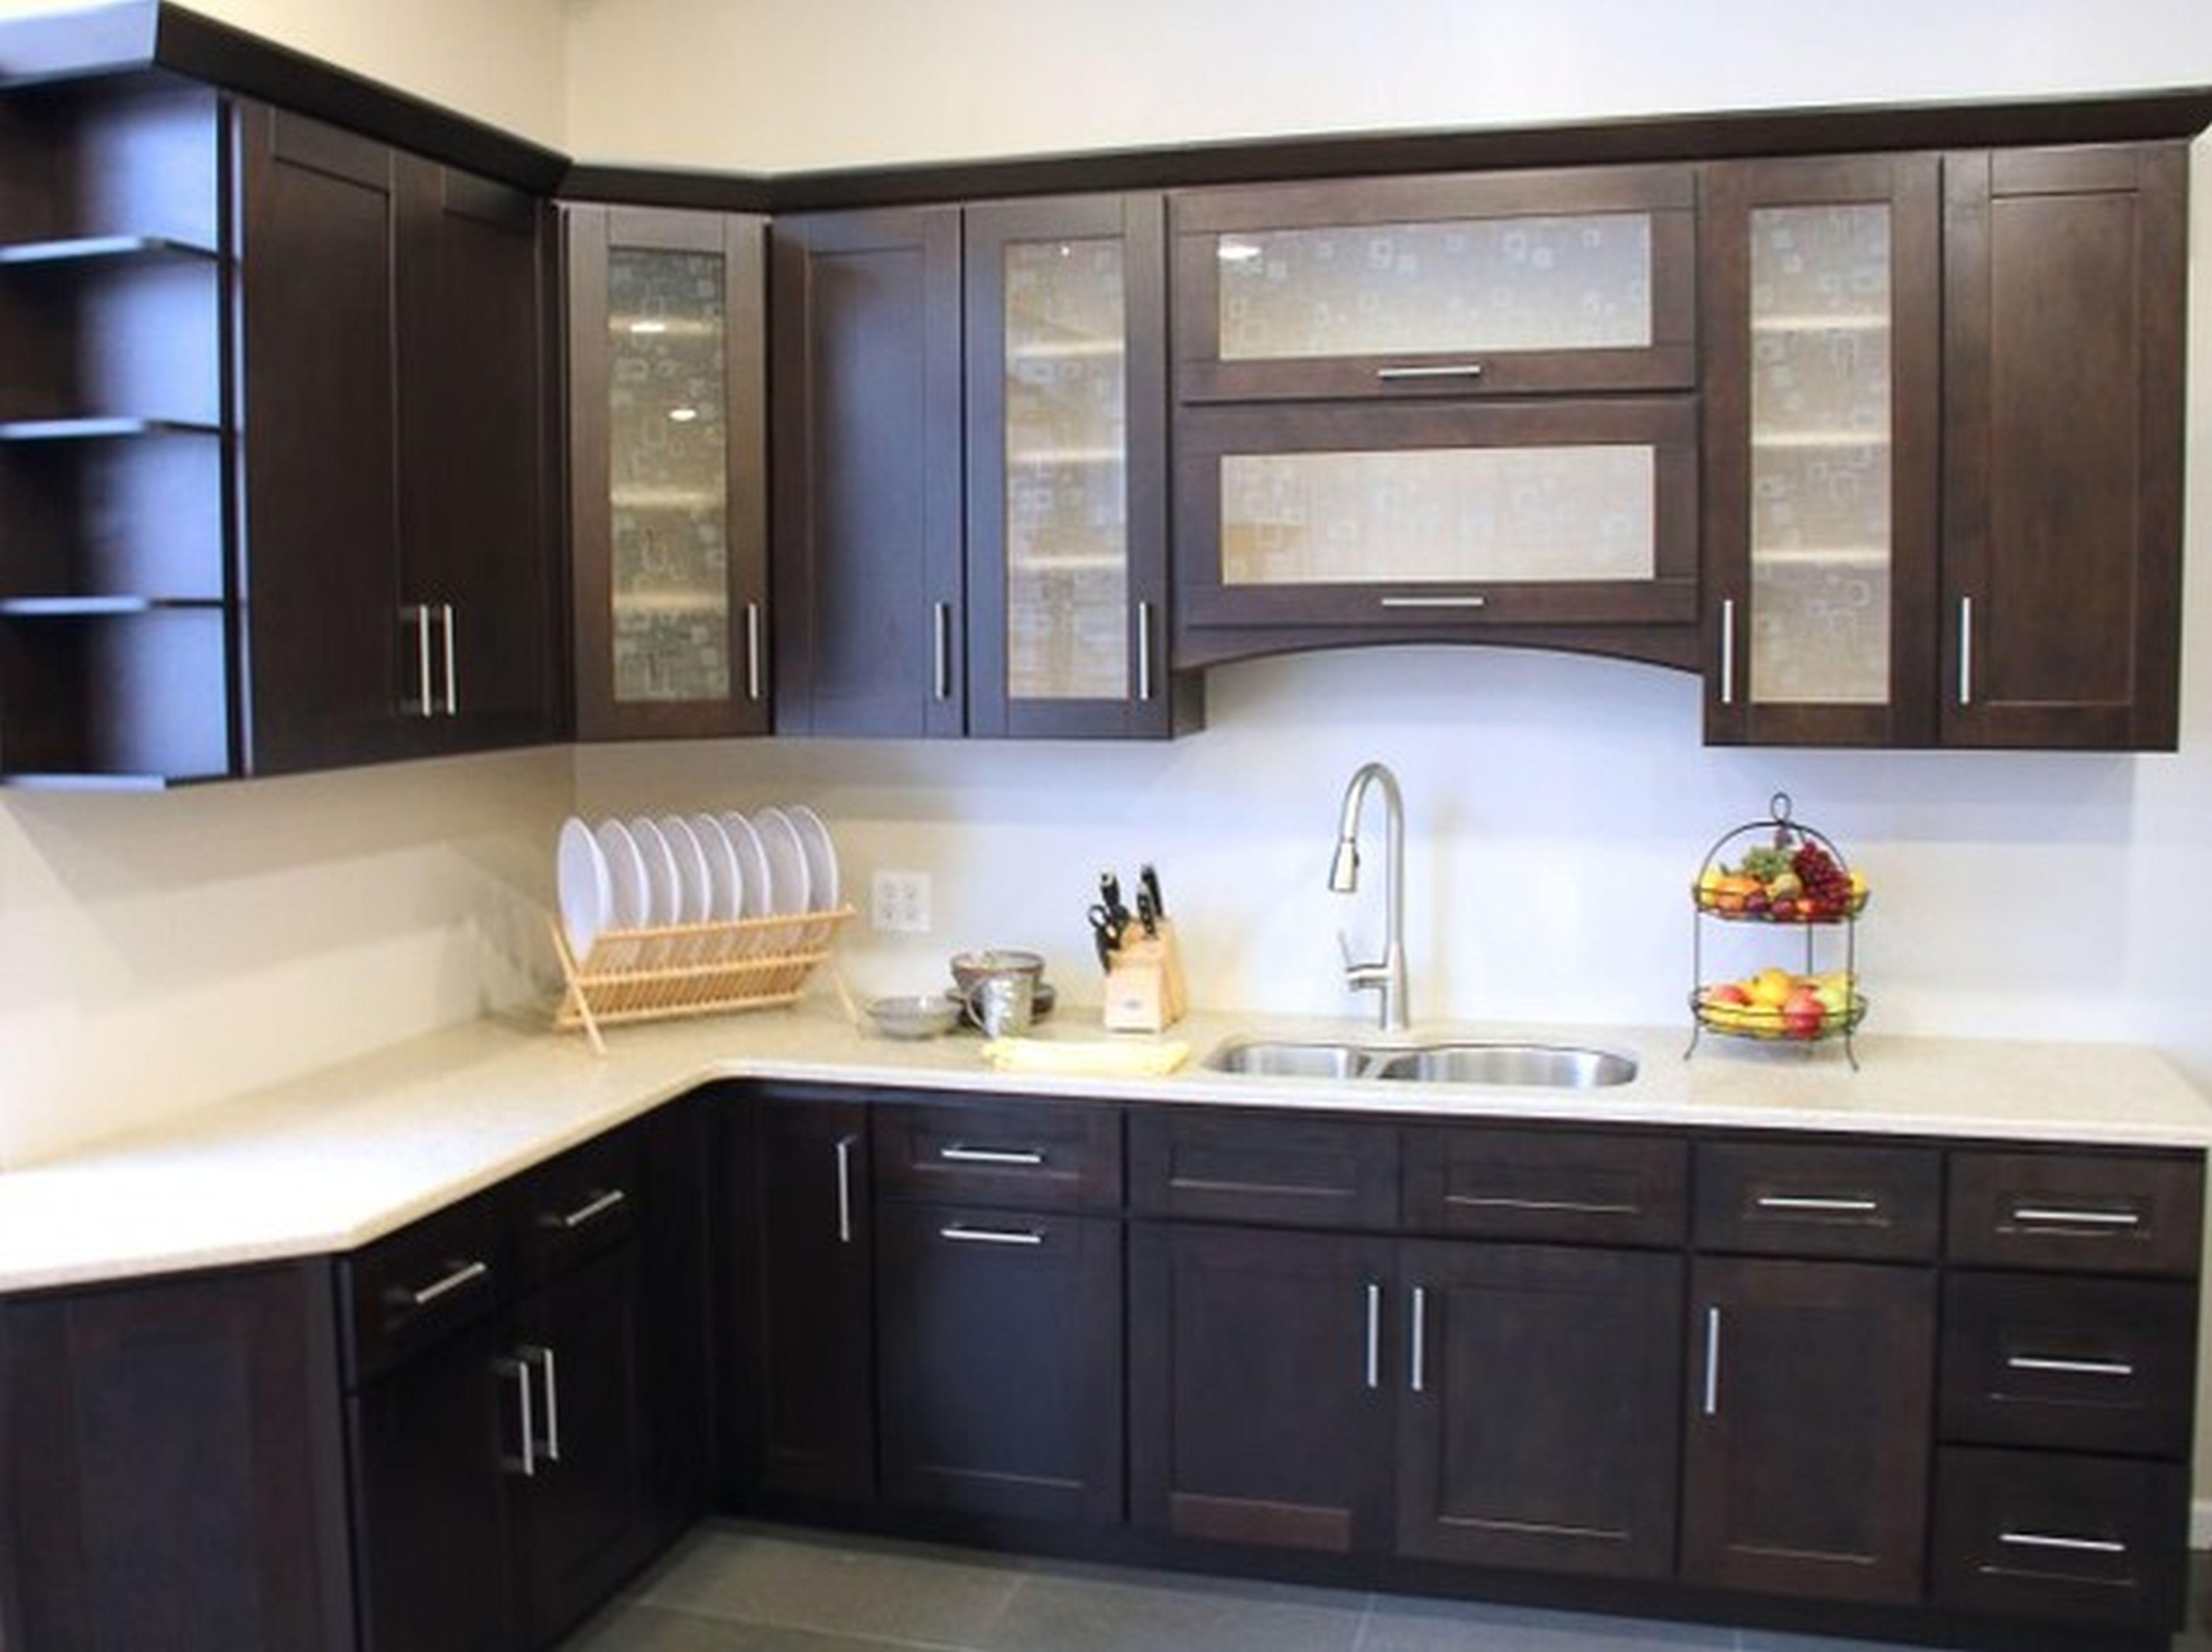 Finding Matching Kitchen Cabinets And Countertops Kitchen Cabinet Design Custom Kitchen Cabinets Design Simple Kitchen Cabinets